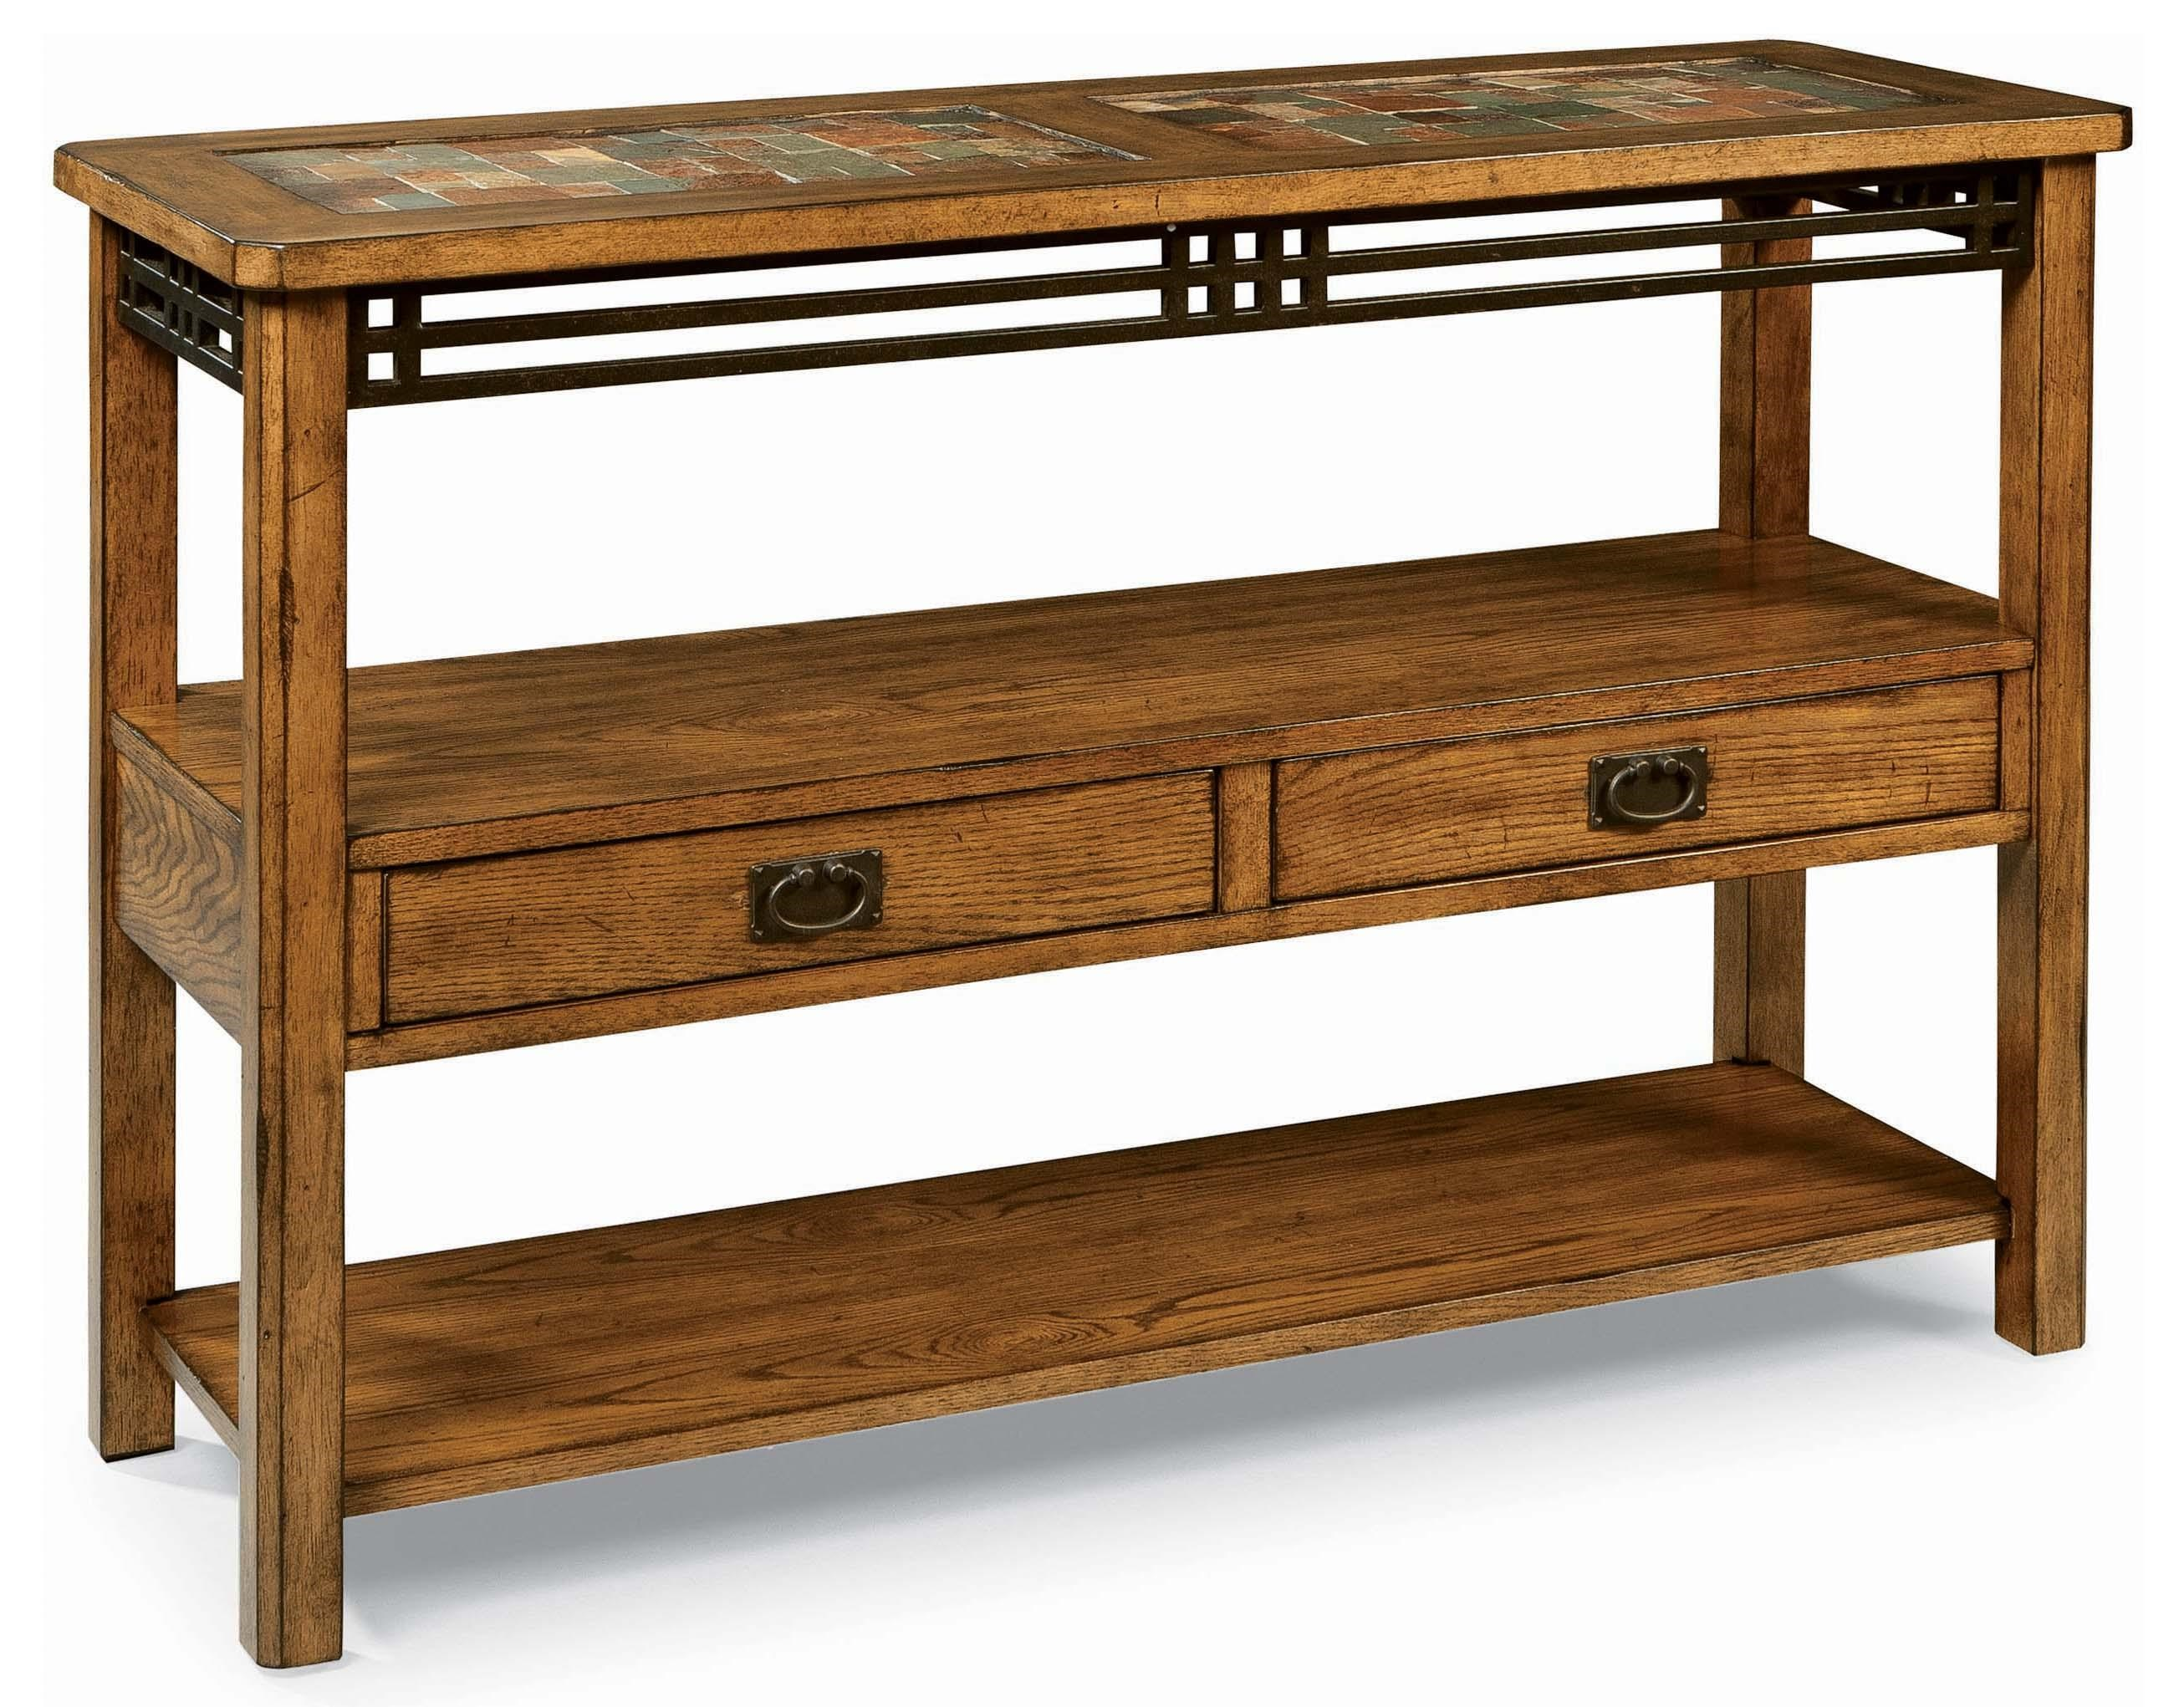 Peters Revington American Craftsman Oak Sofa Table With